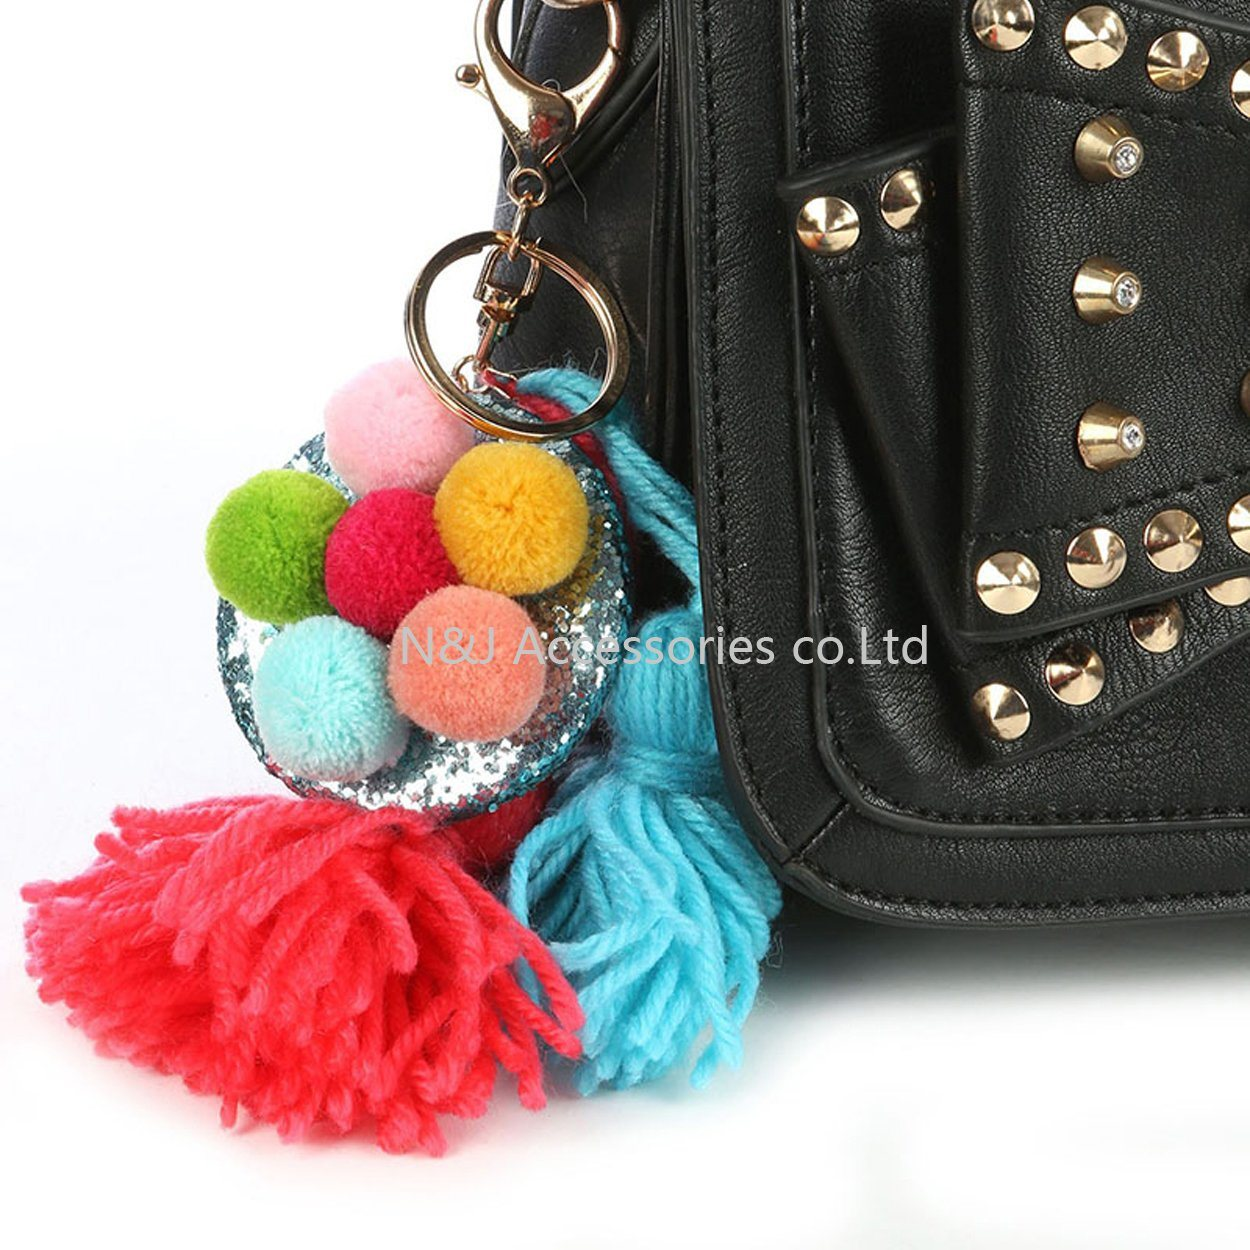 Tassels Badge Bag Accessory Key Chain for Women Jewelry Gift